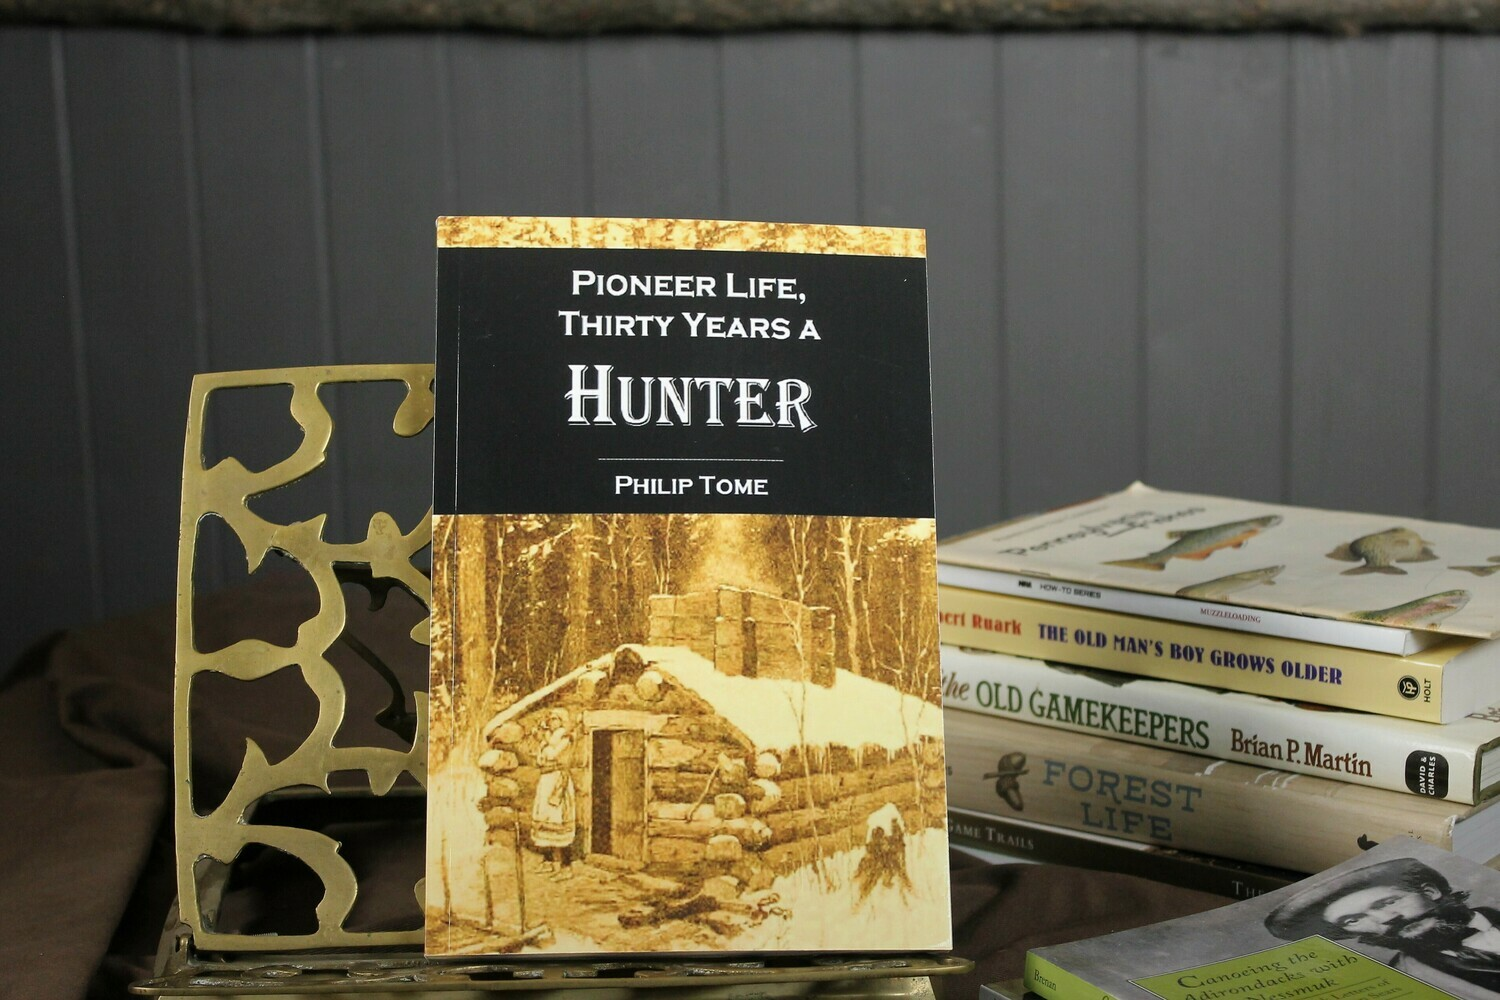 Pioneer Life, Thirty Years a Hunter by Philip Tome